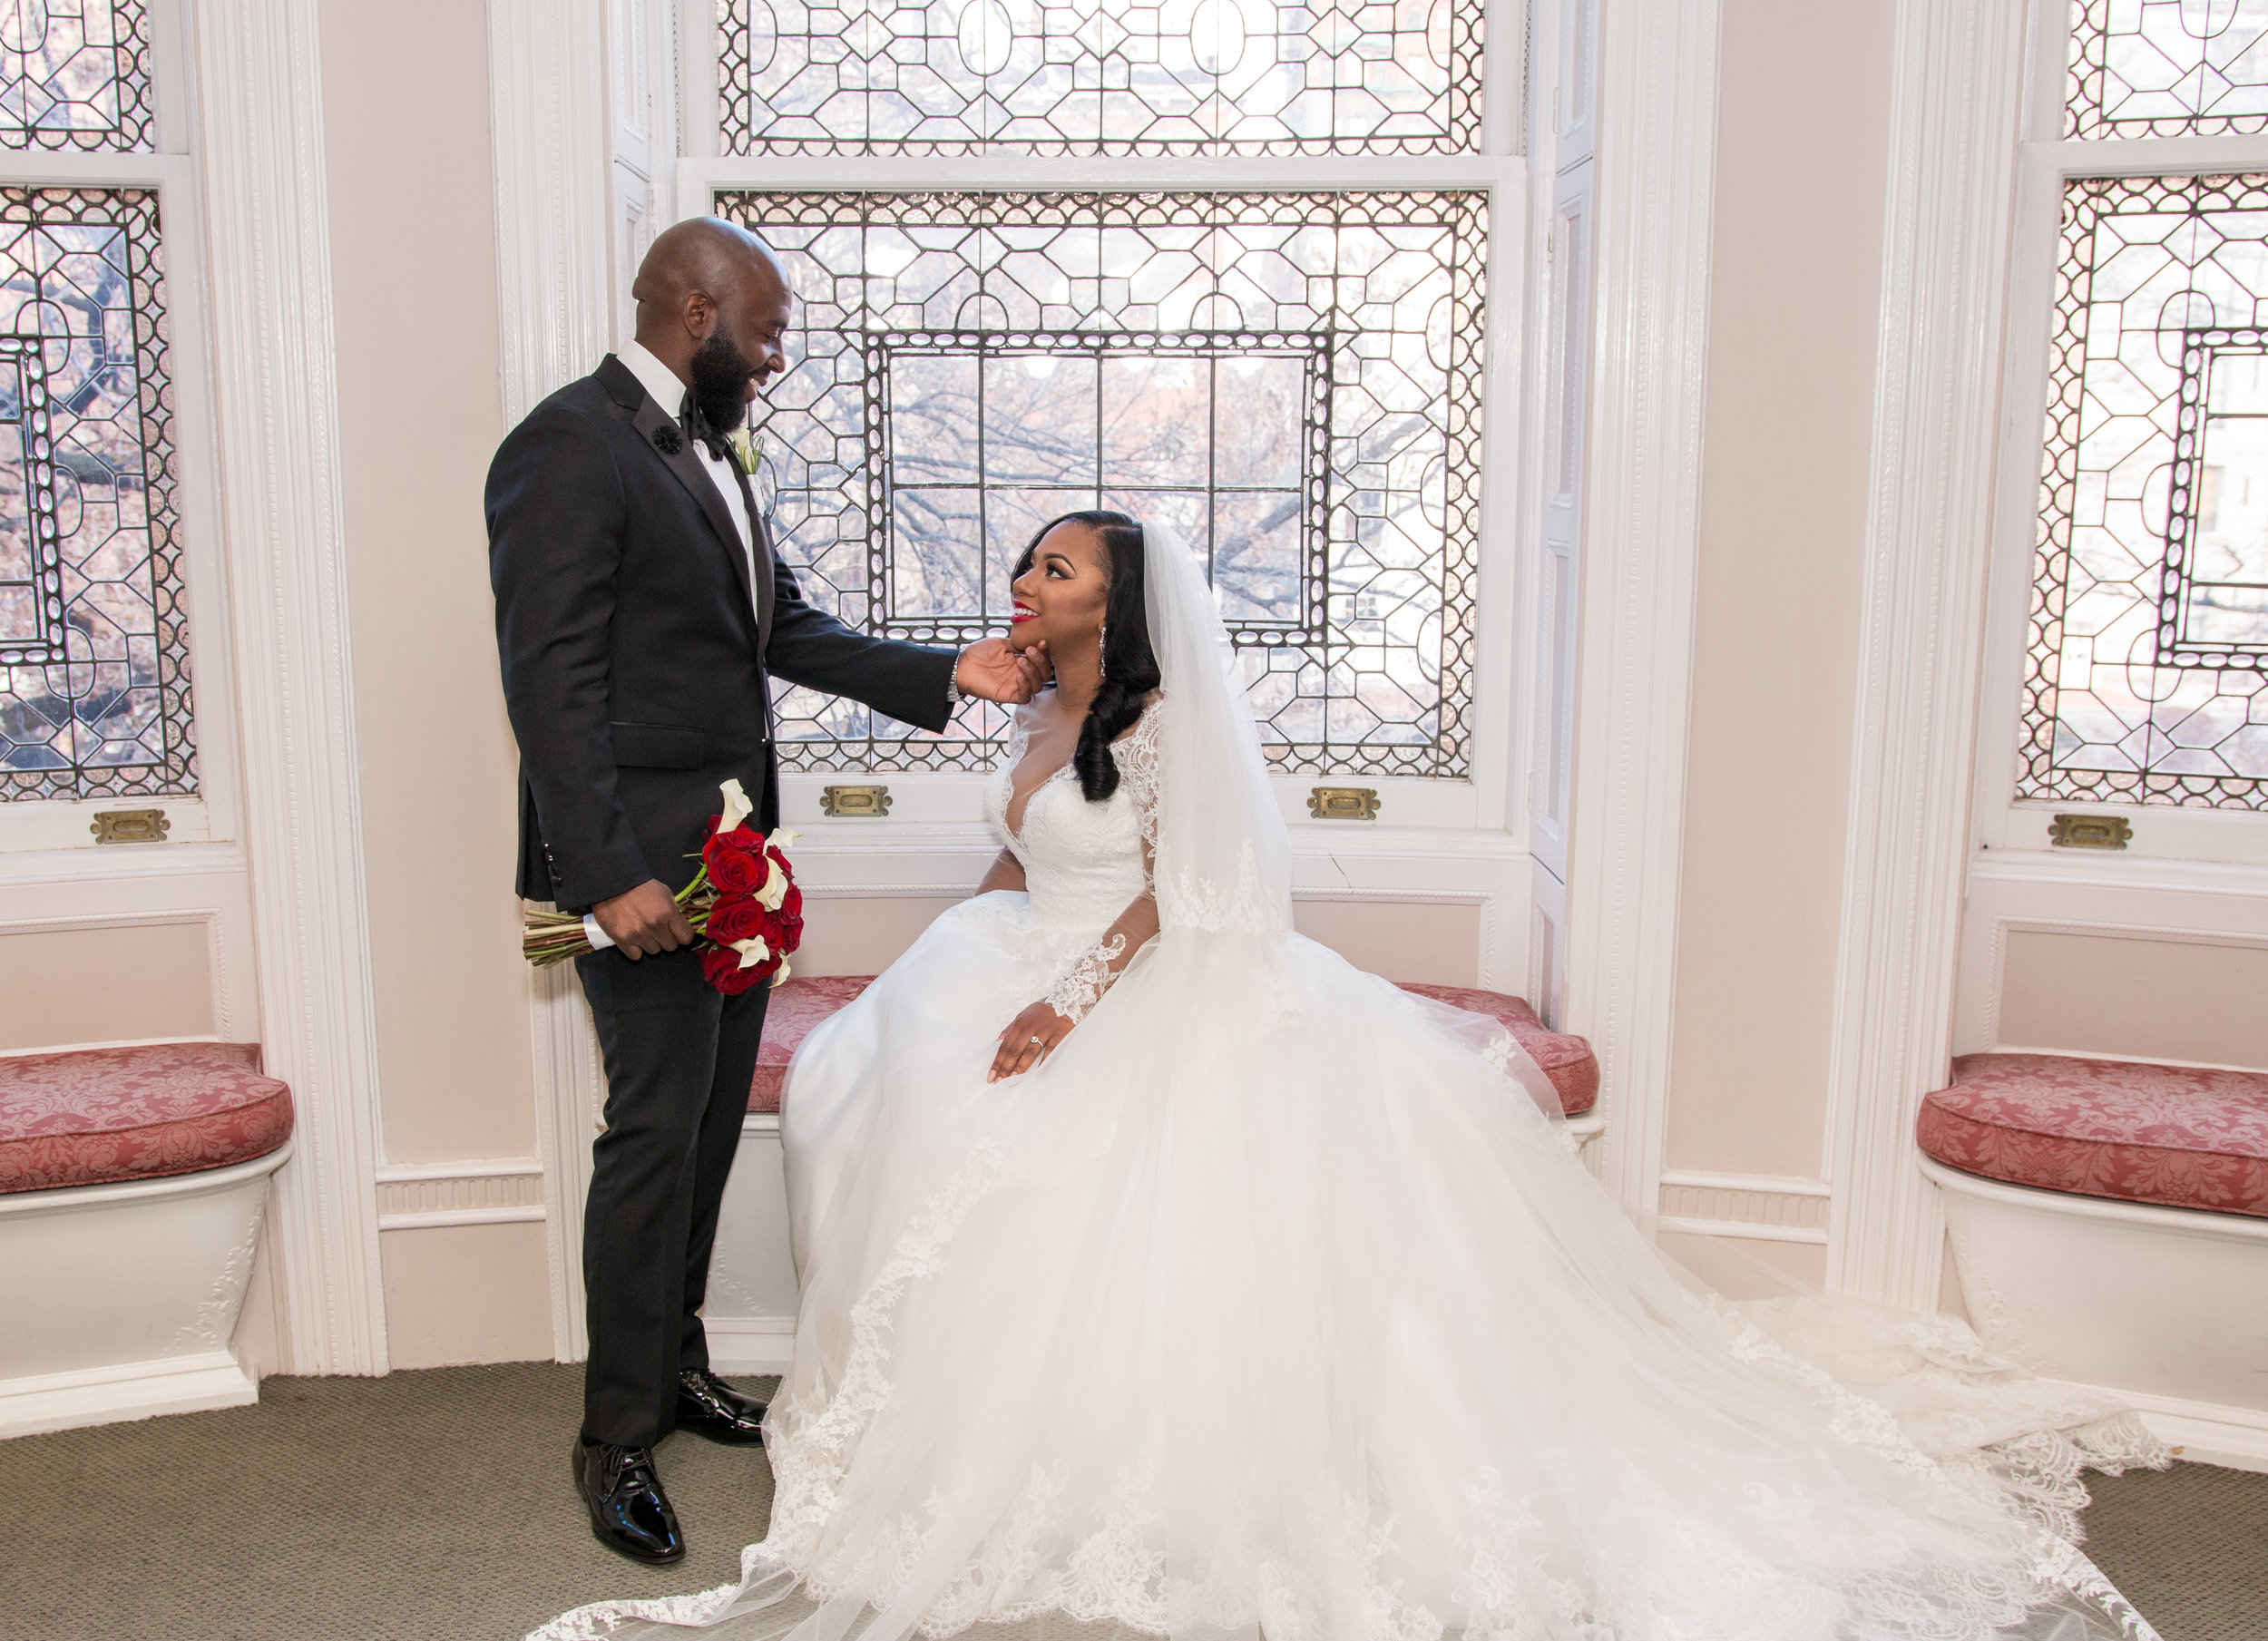 Megan L. - My husband's wedding tux made by DifferentRegard was absolutely flawless! Fine craftsmanship and great customer service is what you can expect when purchasing from Different Regard.